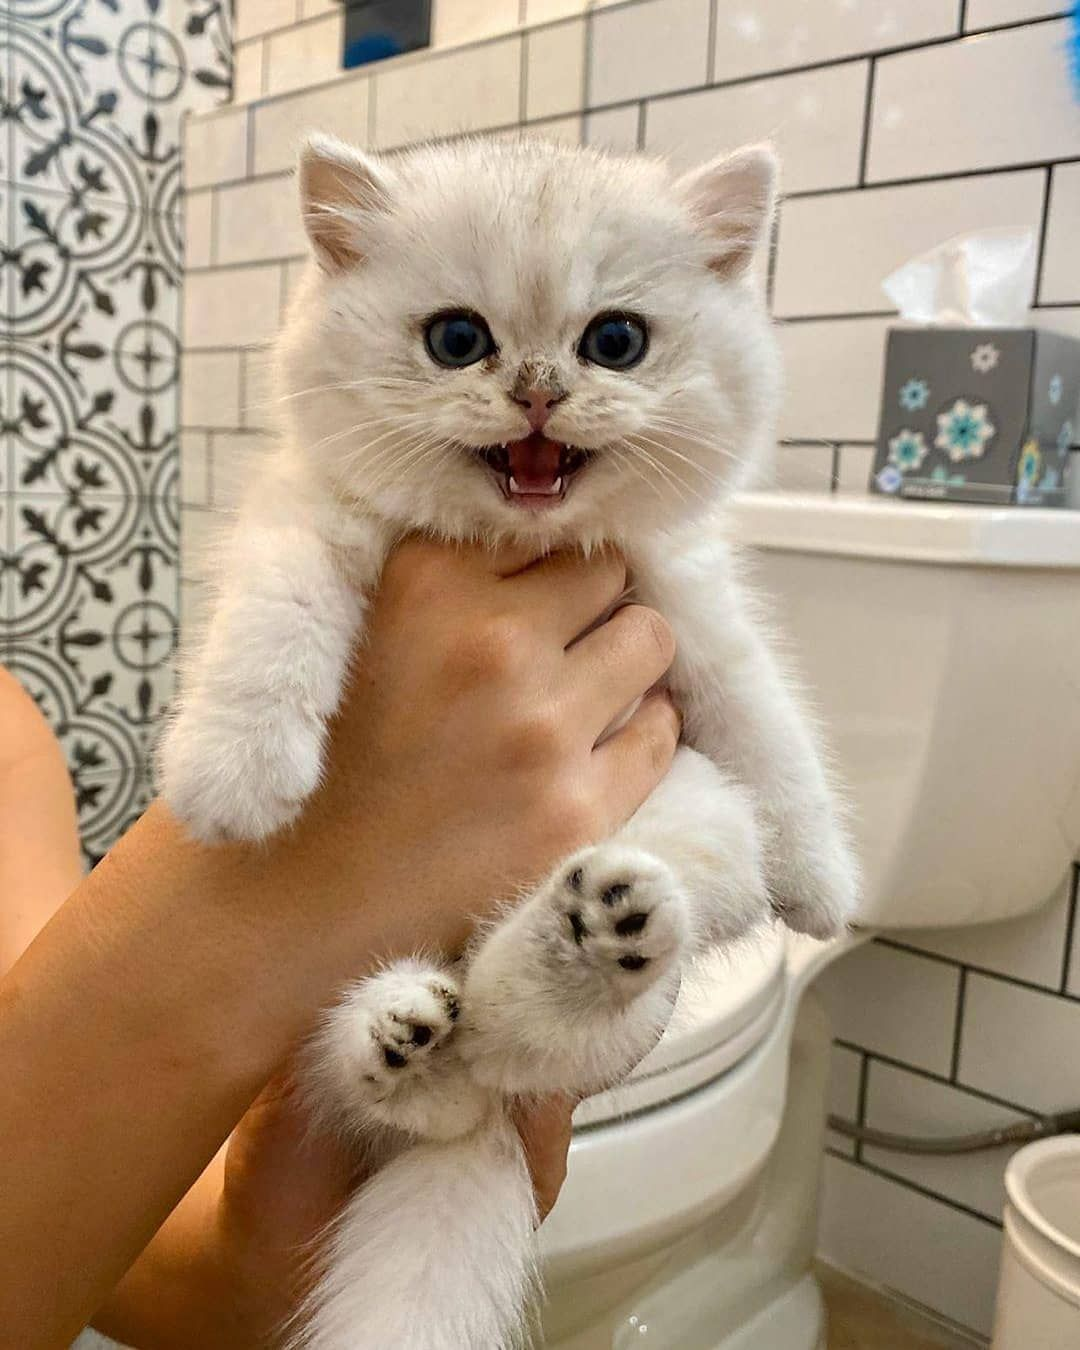 My Dreamy Cats On Instagram Follow Us Mydreamycats If You Are A Real Cat Lover We Publish Cute Cats Photo And Amazing V In 2020 Cute Cats Photos Cute Cats Cat Love